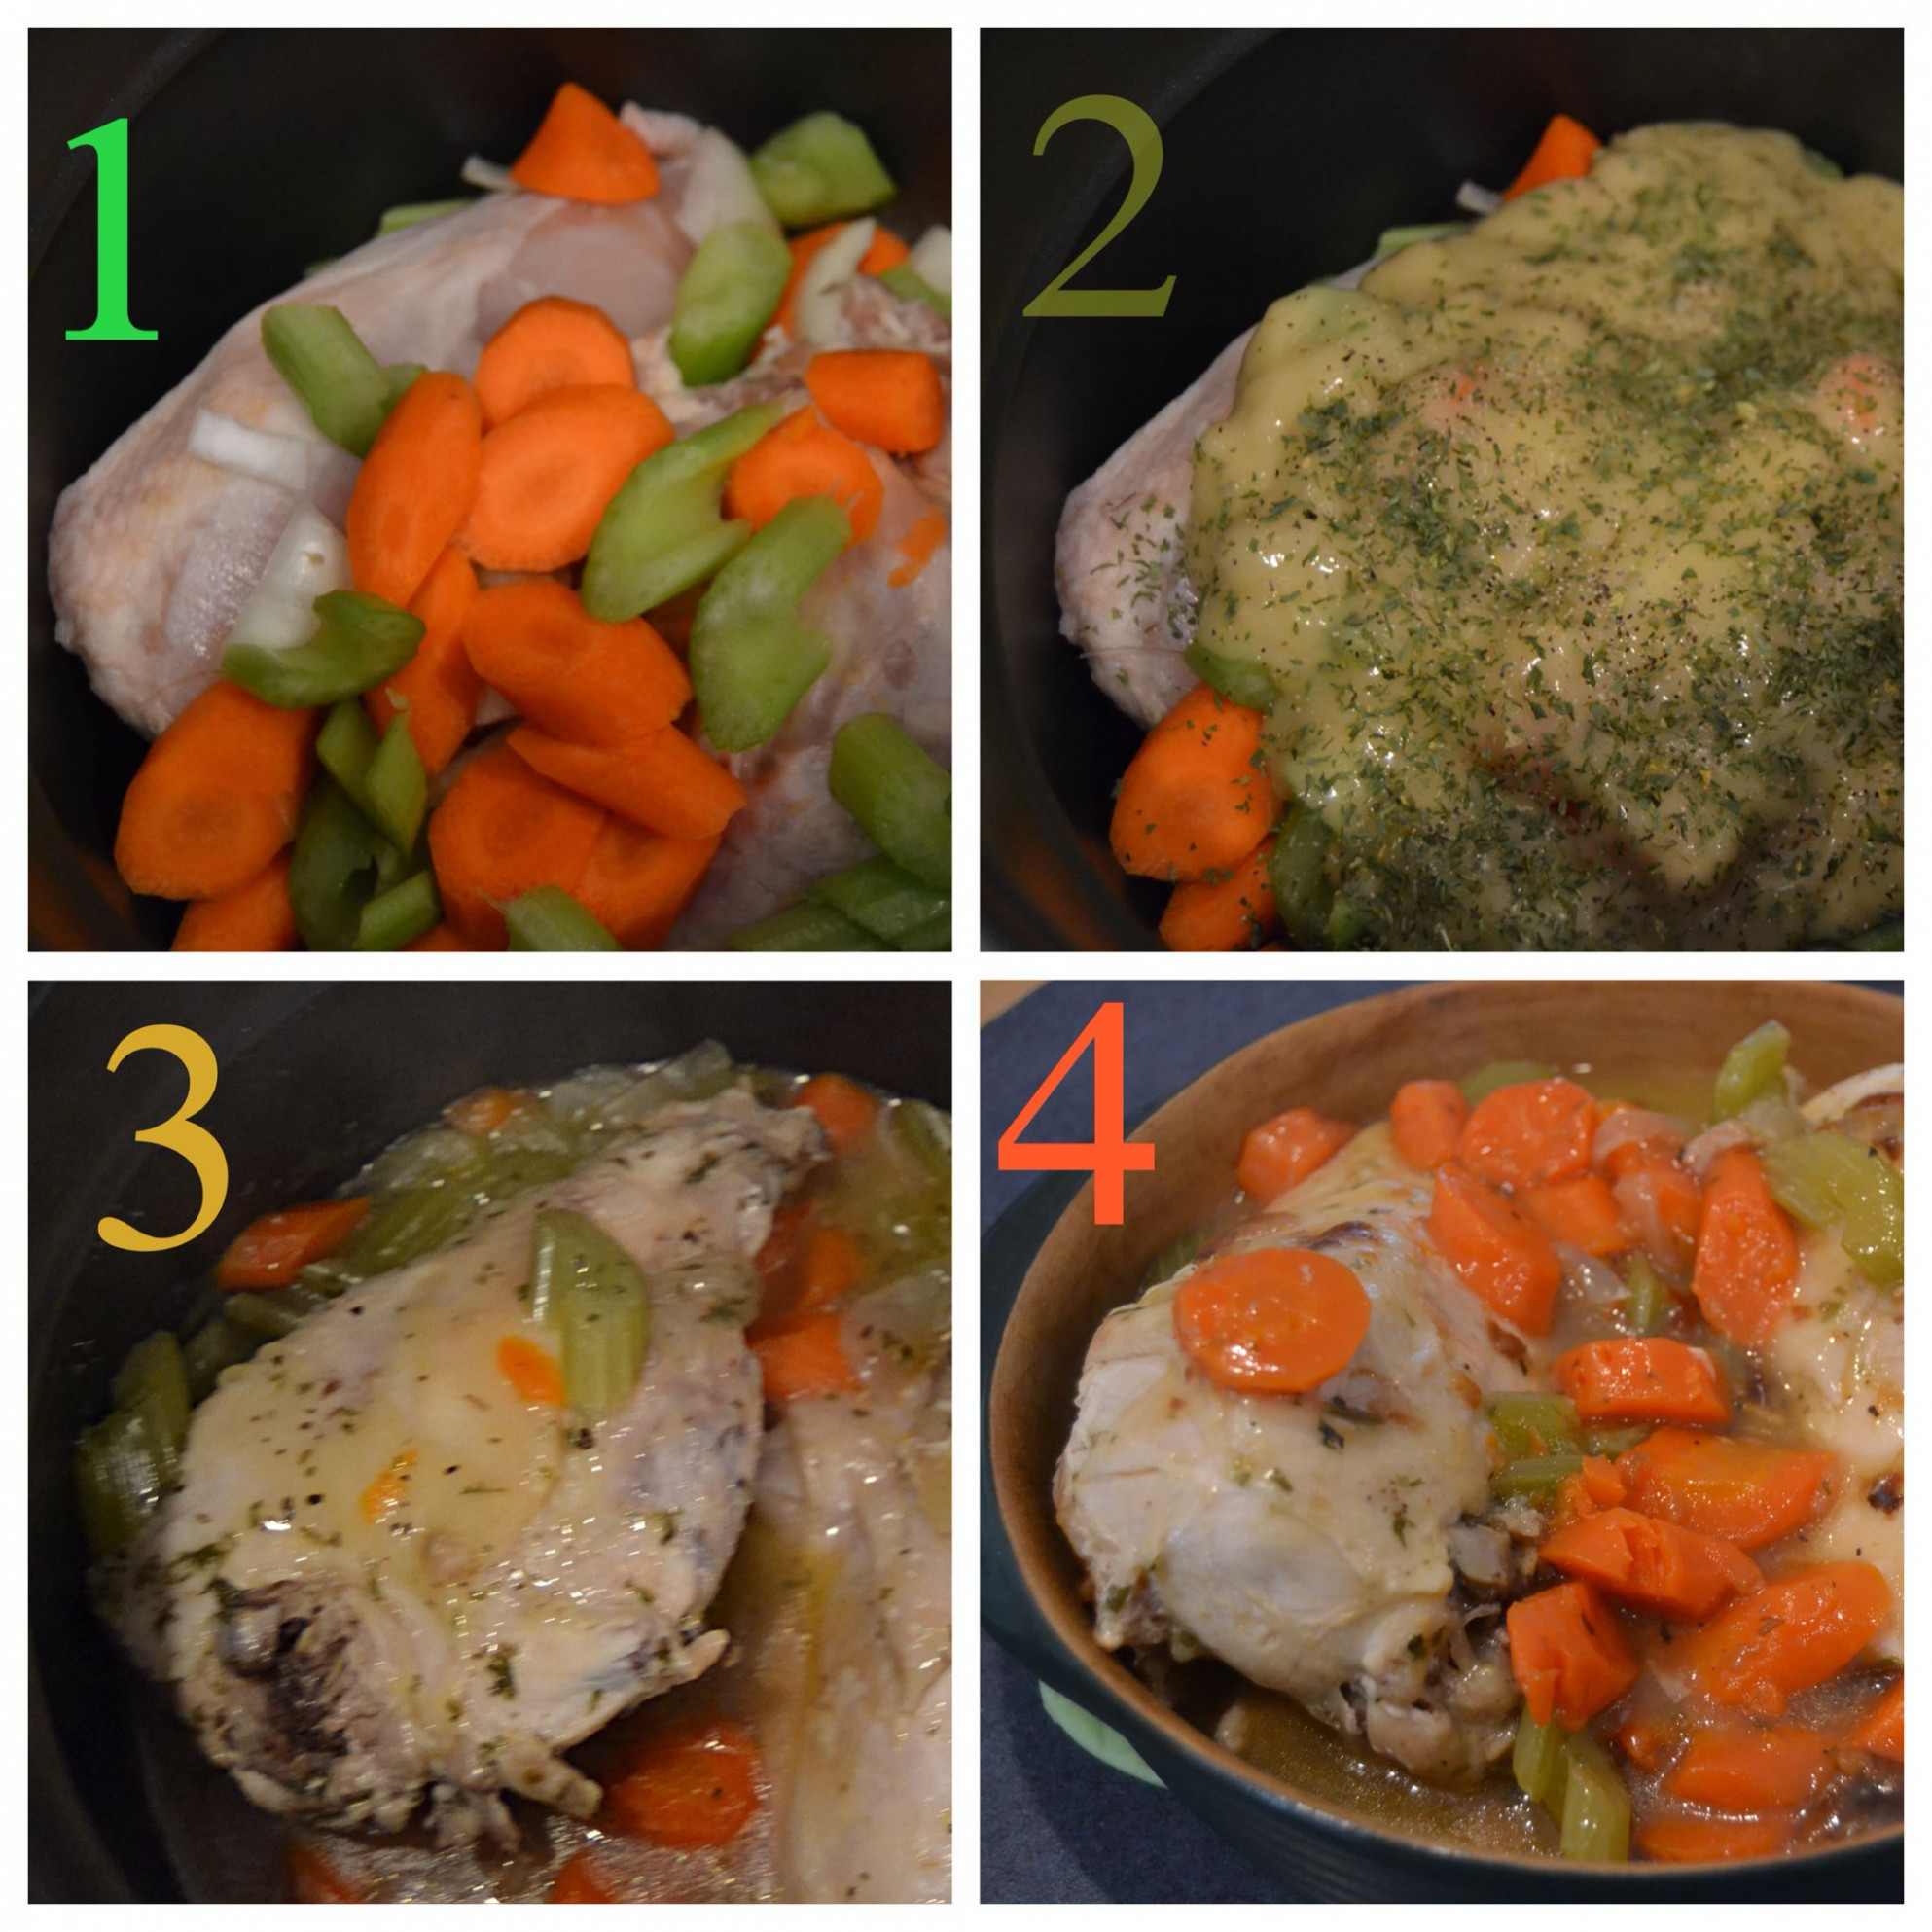 Pin on recipes - pressure cooker xl chicken breast recipes